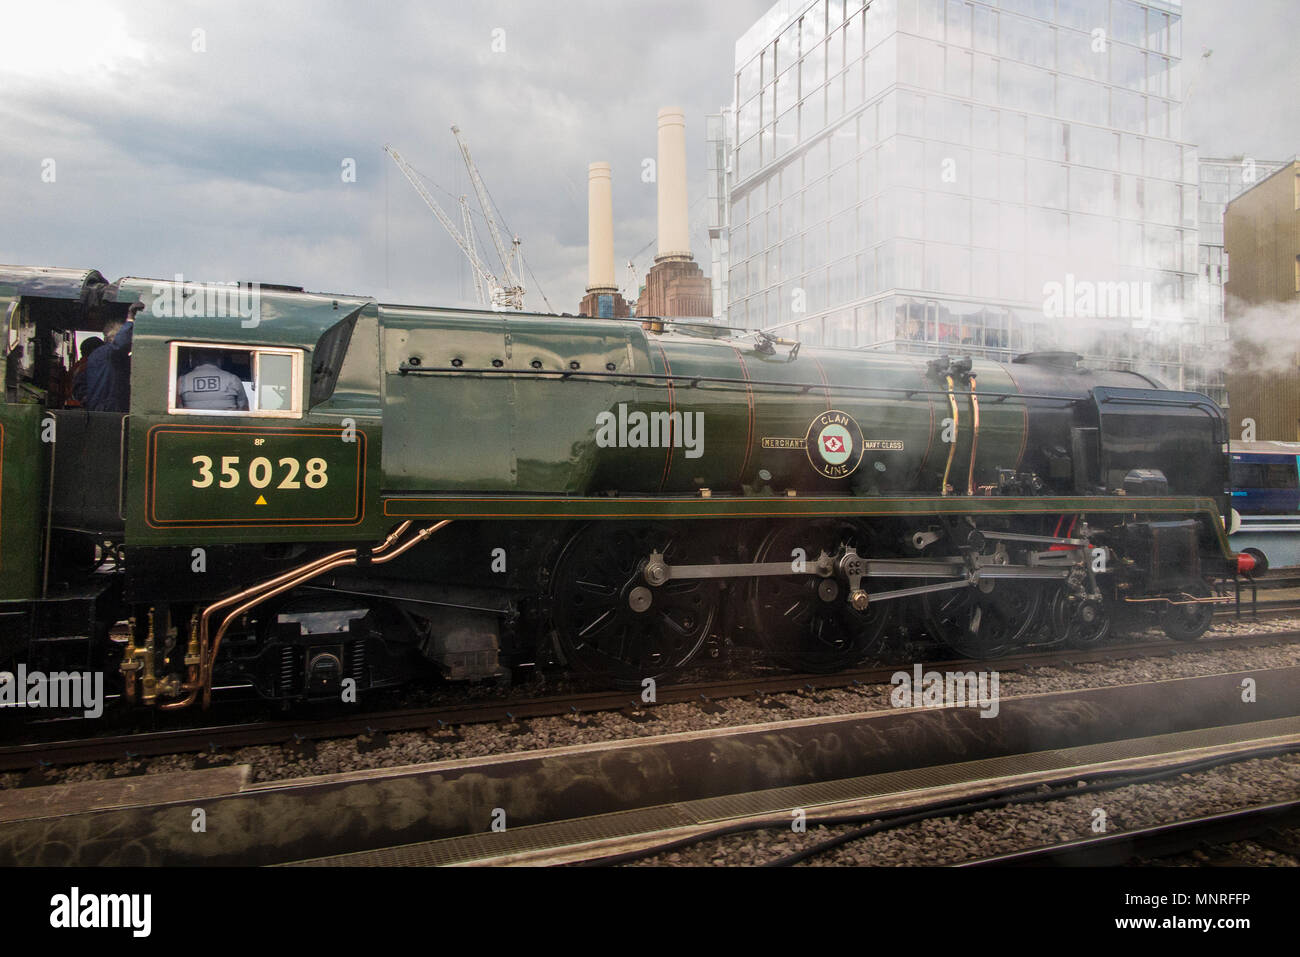 A steam engine locomotive  on it's way past the iconic Battersea Power Station in Central London - Stock Image